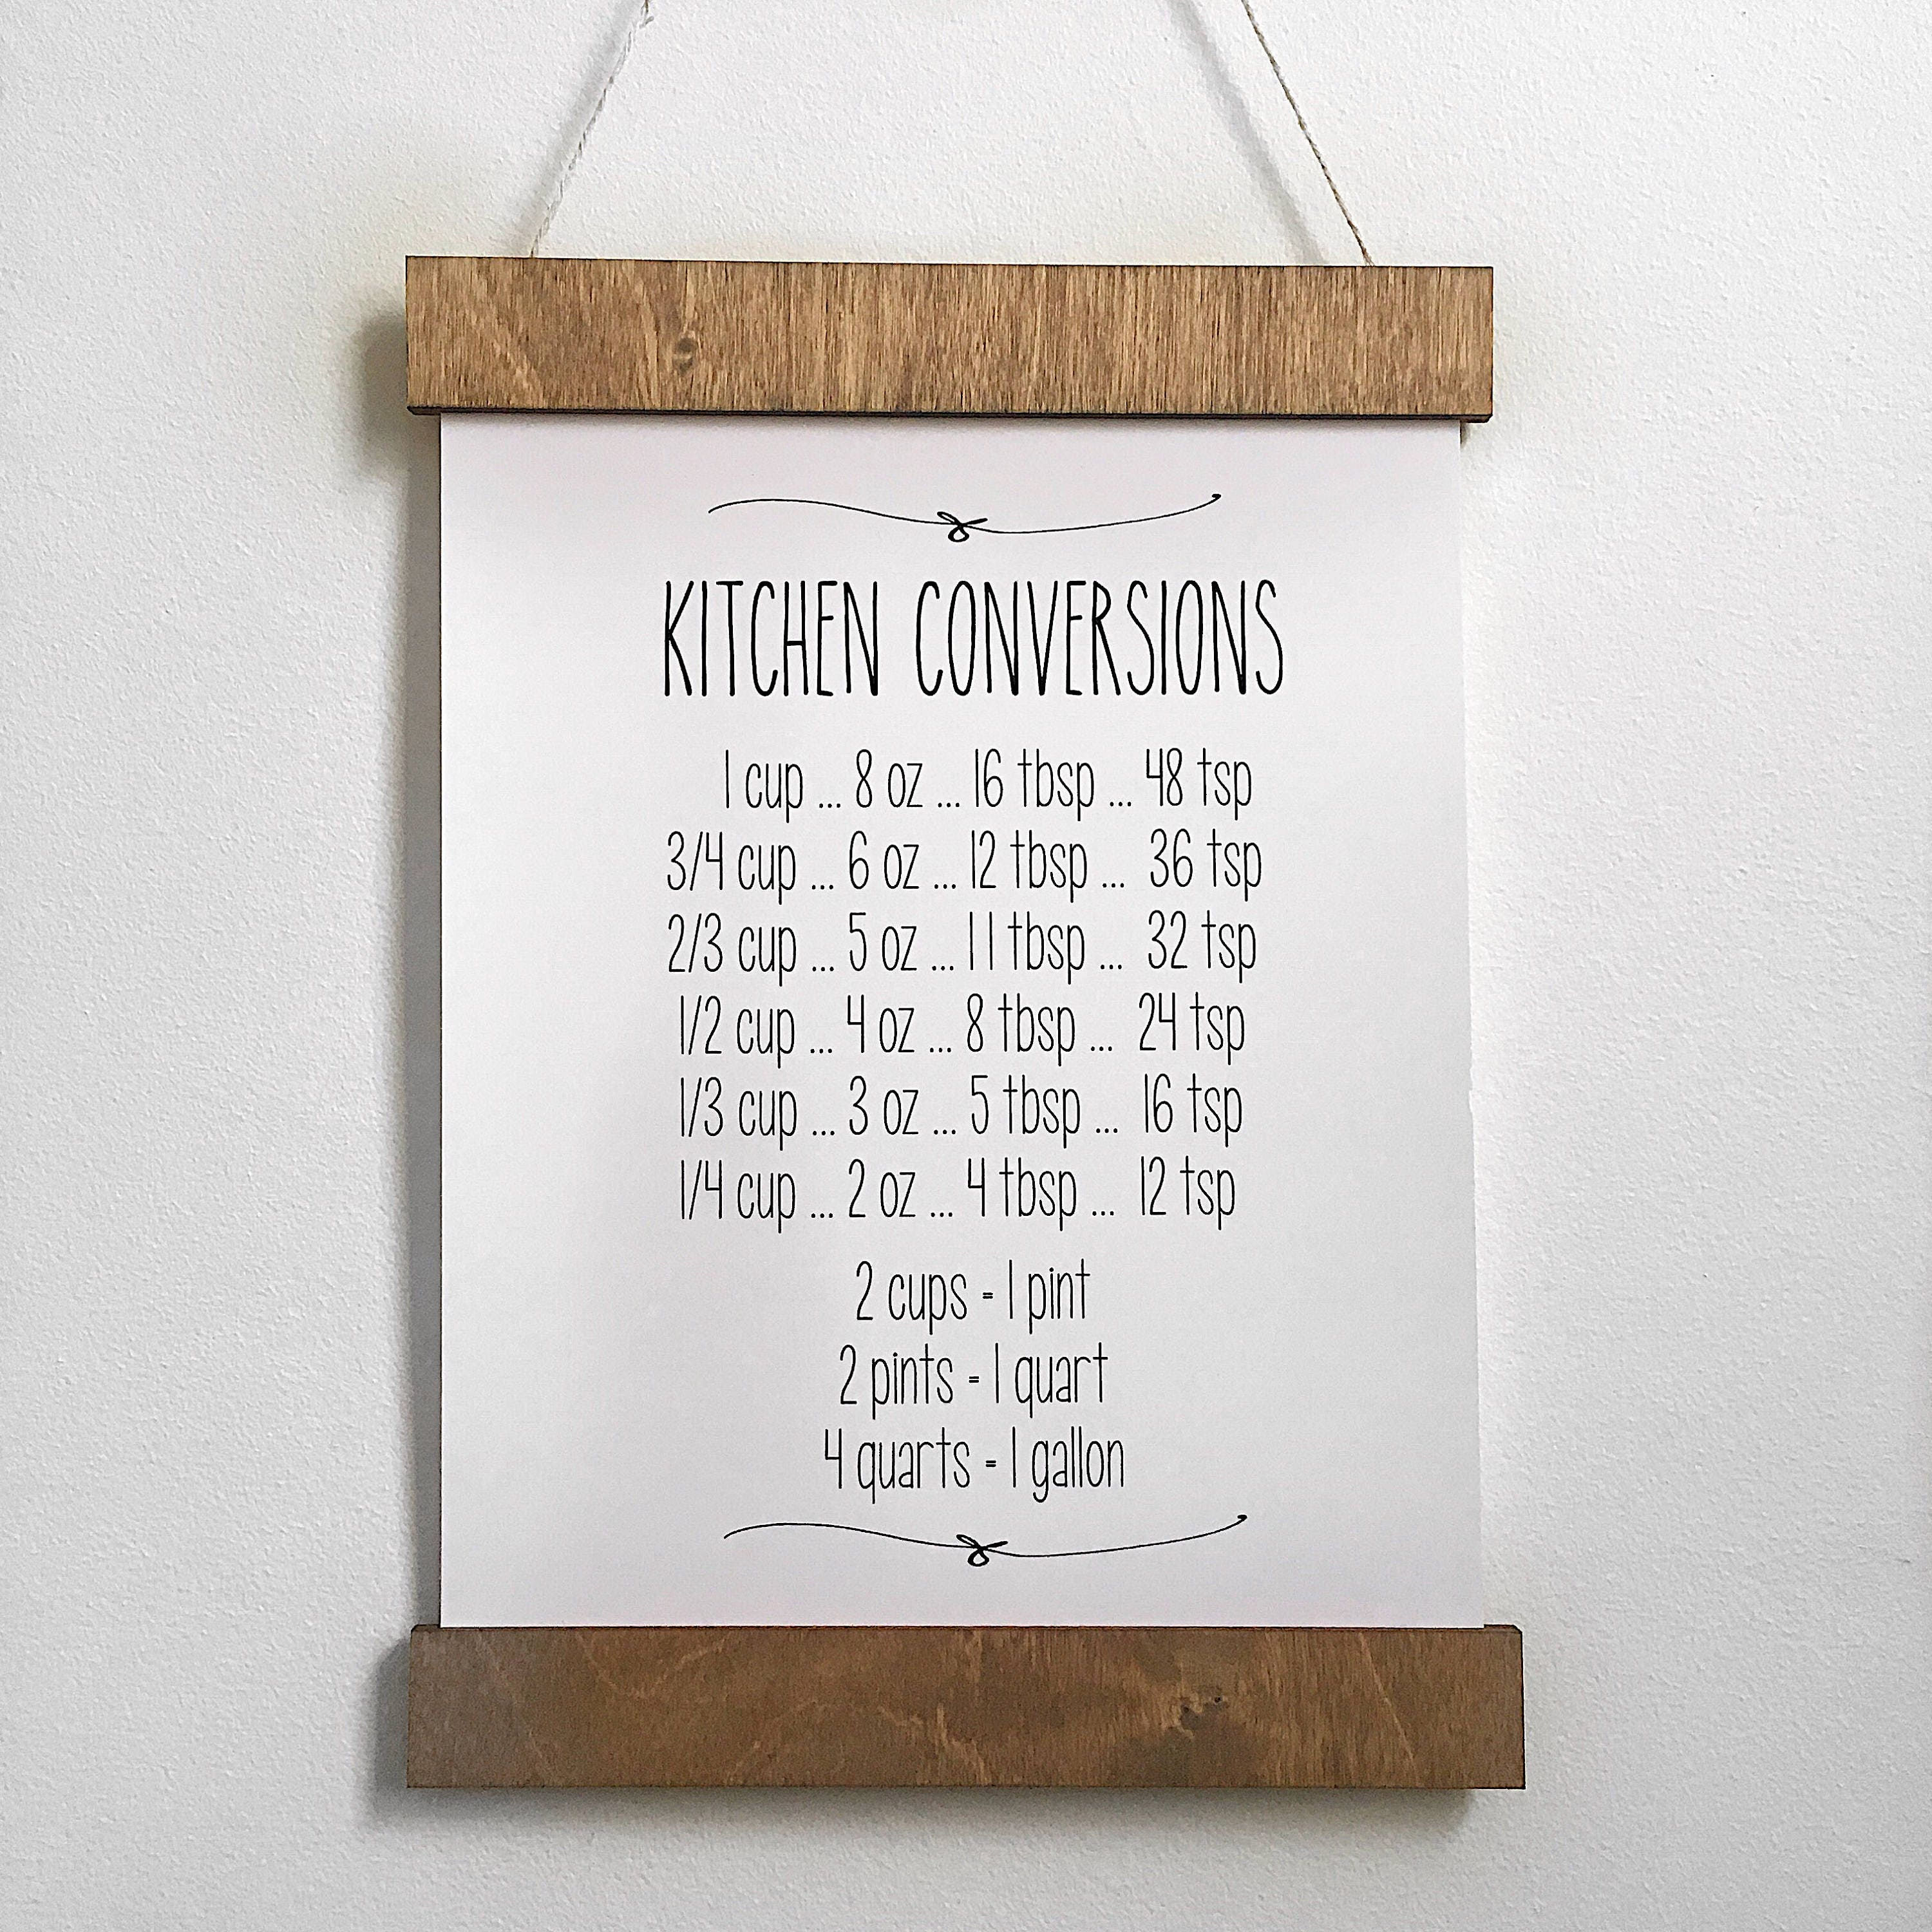 Tsp to tbsp conversion chart choice image free any chart examples tsp to tbsp conversion chart image collections free any chart tsp to tbsp conversion chart gallery nvjuhfo Choice Image